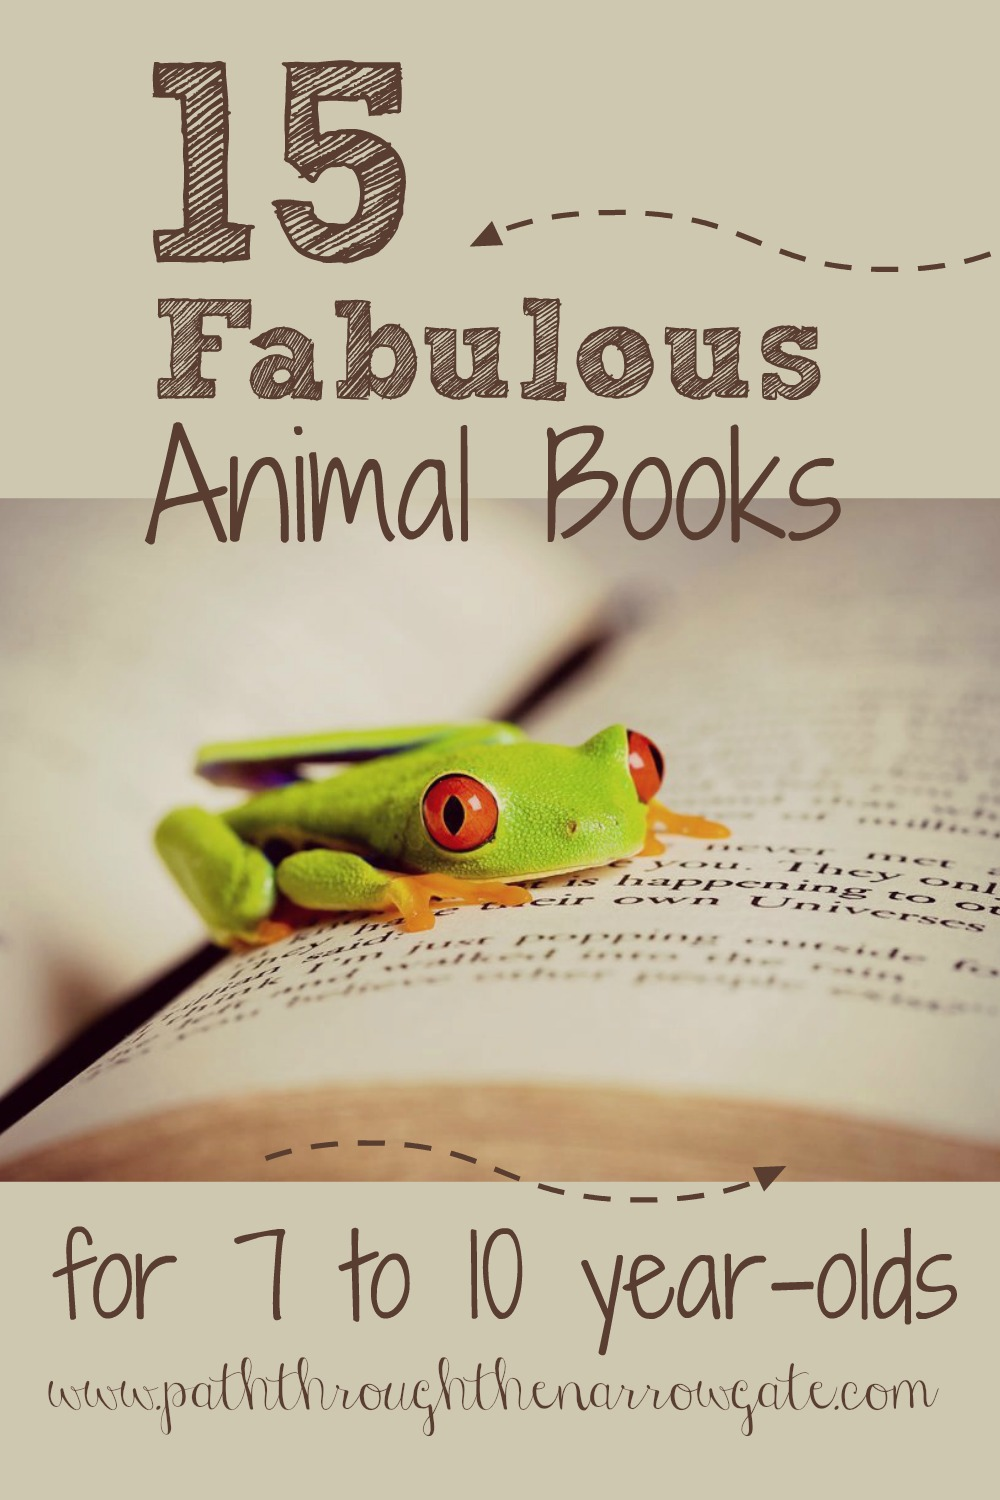 This is such a great list of books for an seven to ten year old animal lover. Am pinning this to keep it handy for the next time I go to the library.